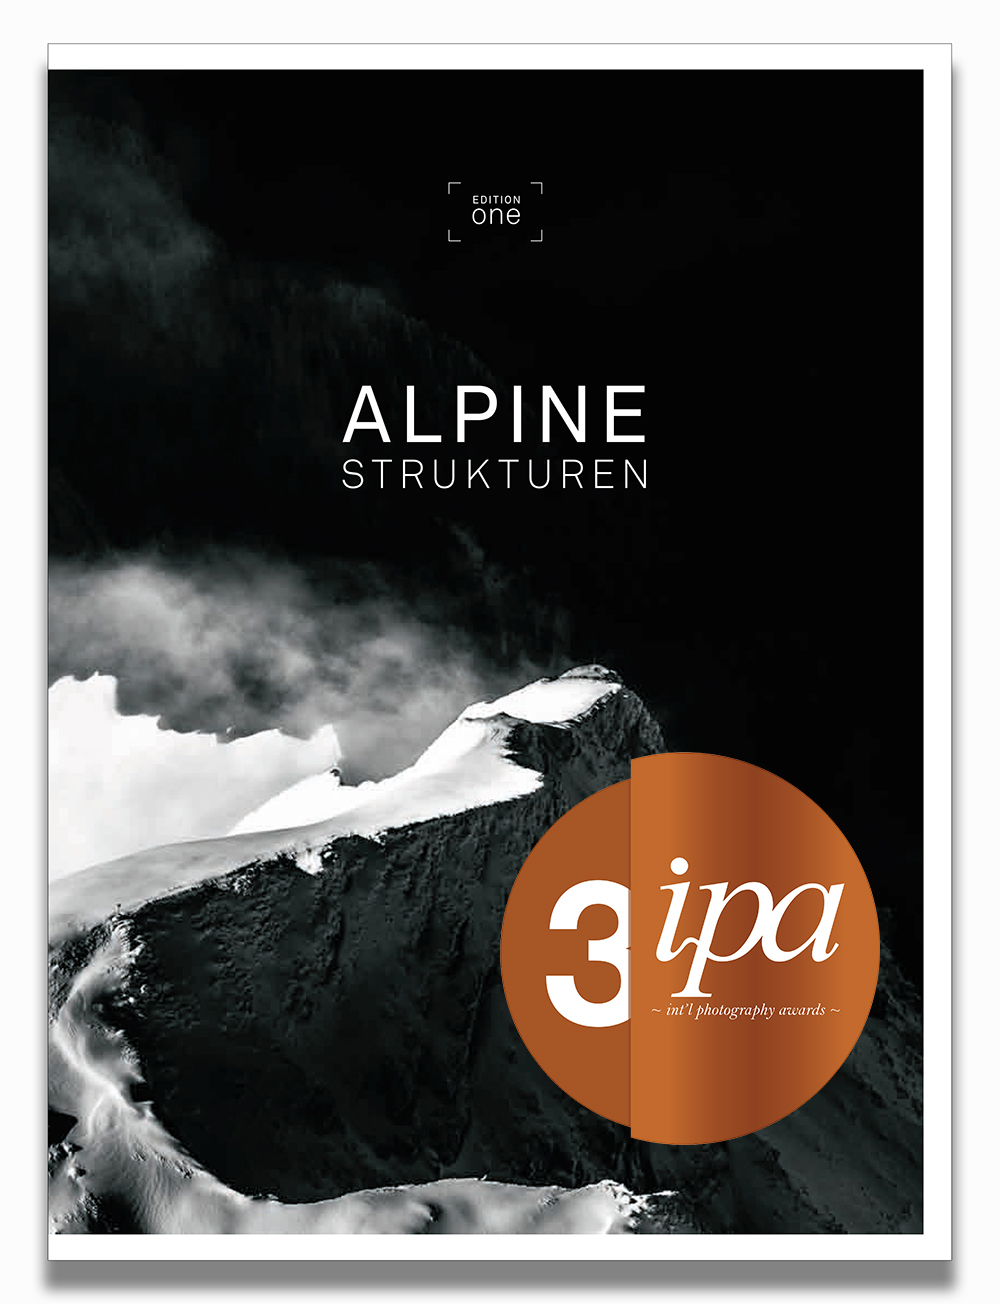 Alpine Strukturen Edition One - Cover.jpg